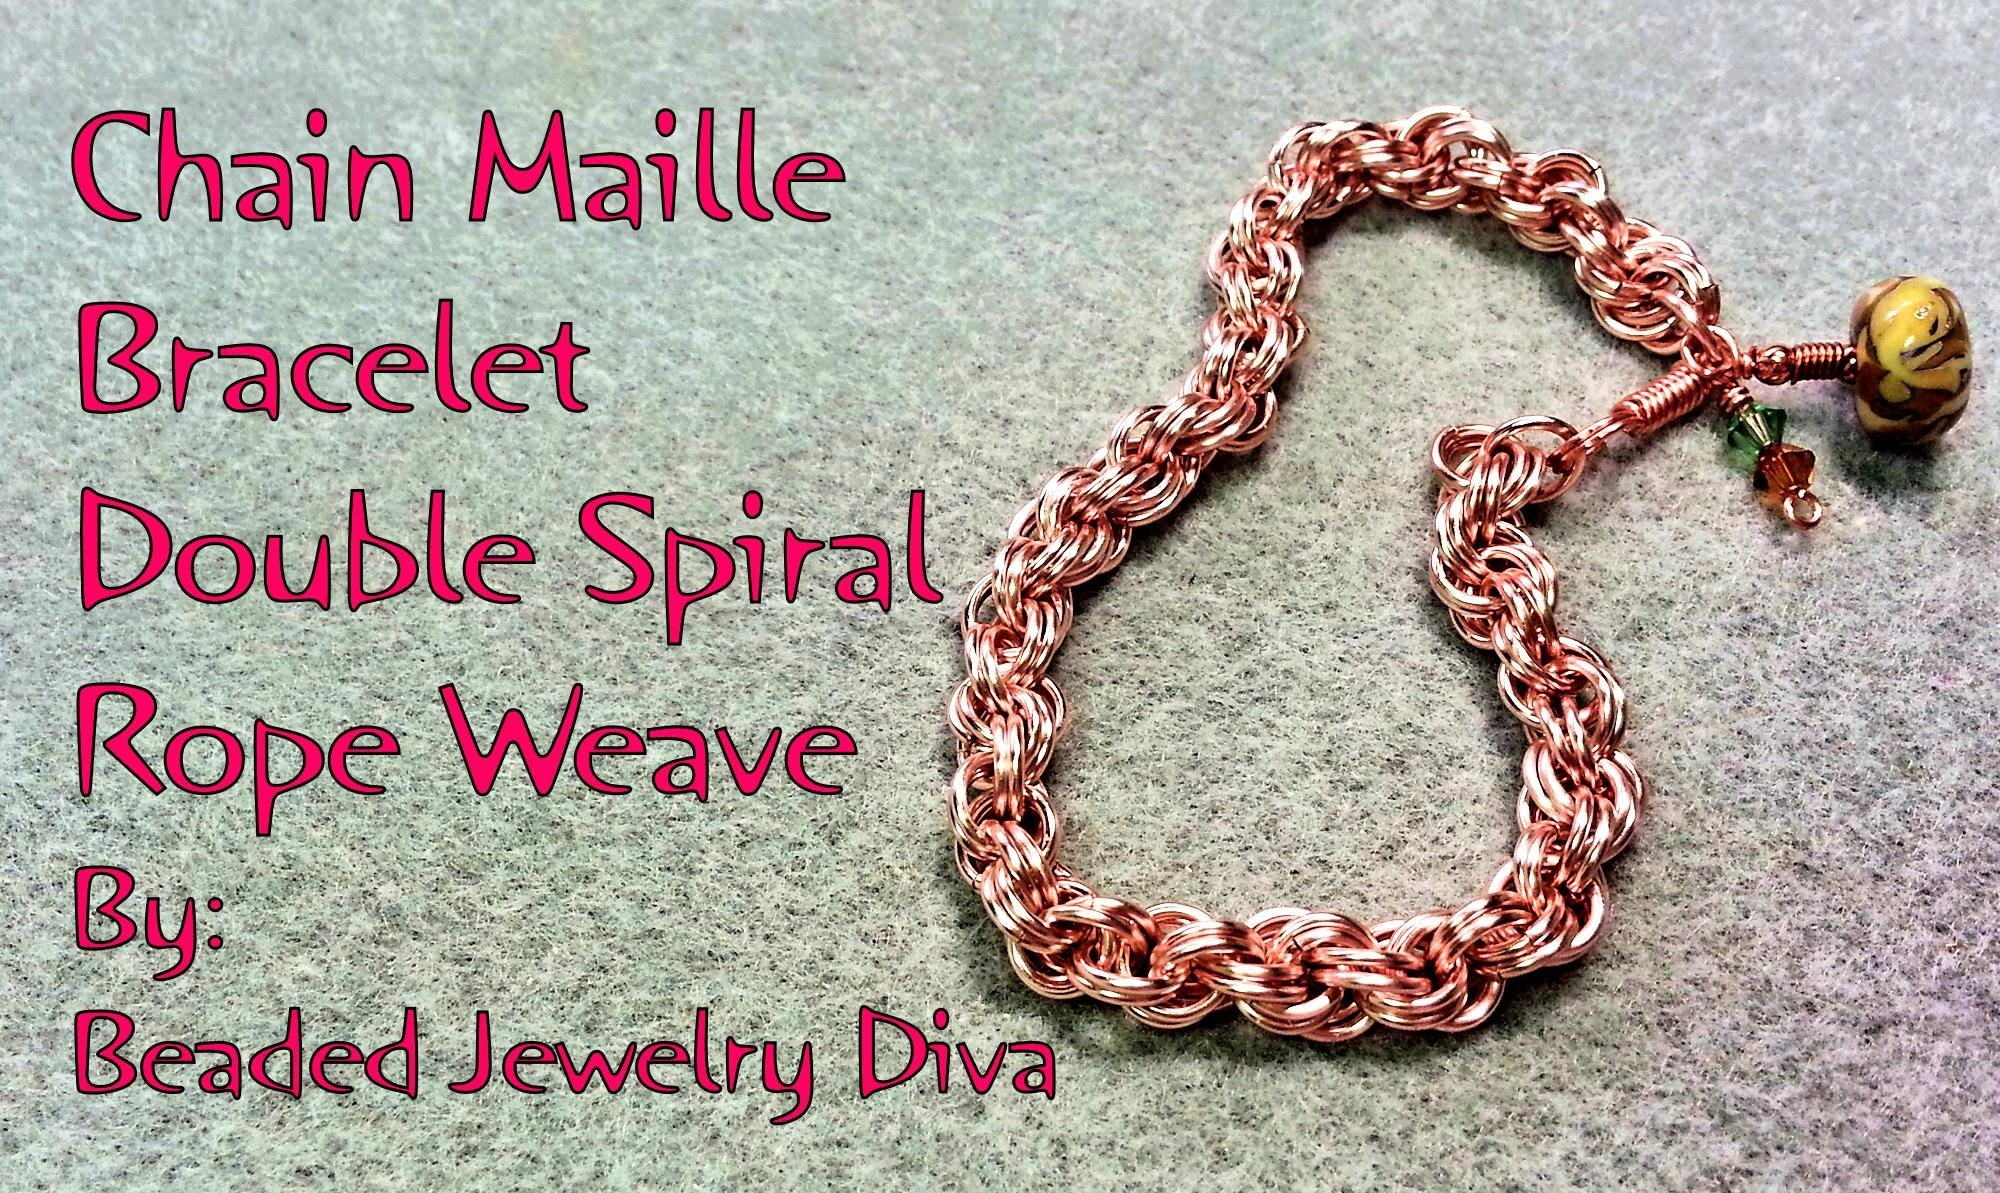 Chain Maille Bracelet Double Spiral Rope Weave - Chain Maille Tutorial